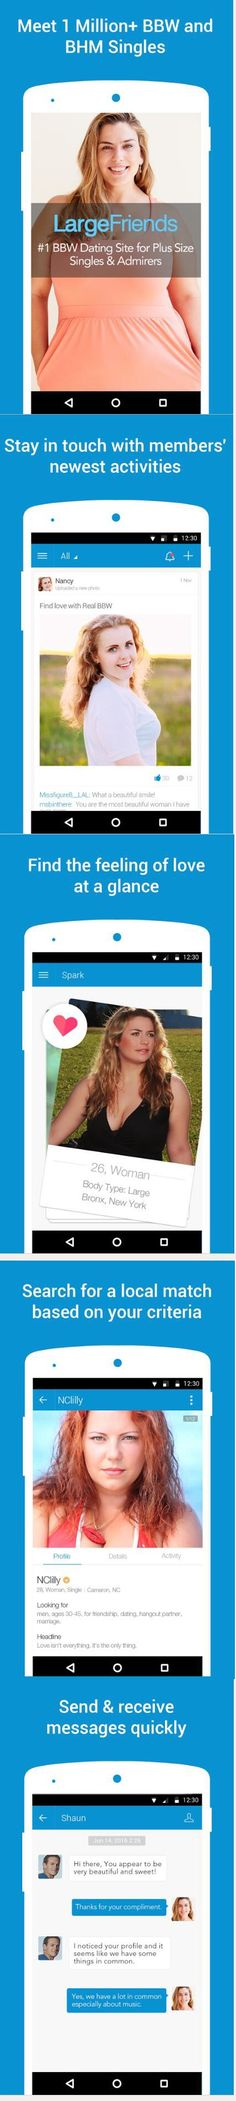 lachine bbw dating site Snapchat dom guys seeking bbws - kinky bbw dating browse listings of dom male users here at kinky bbw personals that are tagged with snapchat talking to other singles who have similar interests is an ideal way to find.